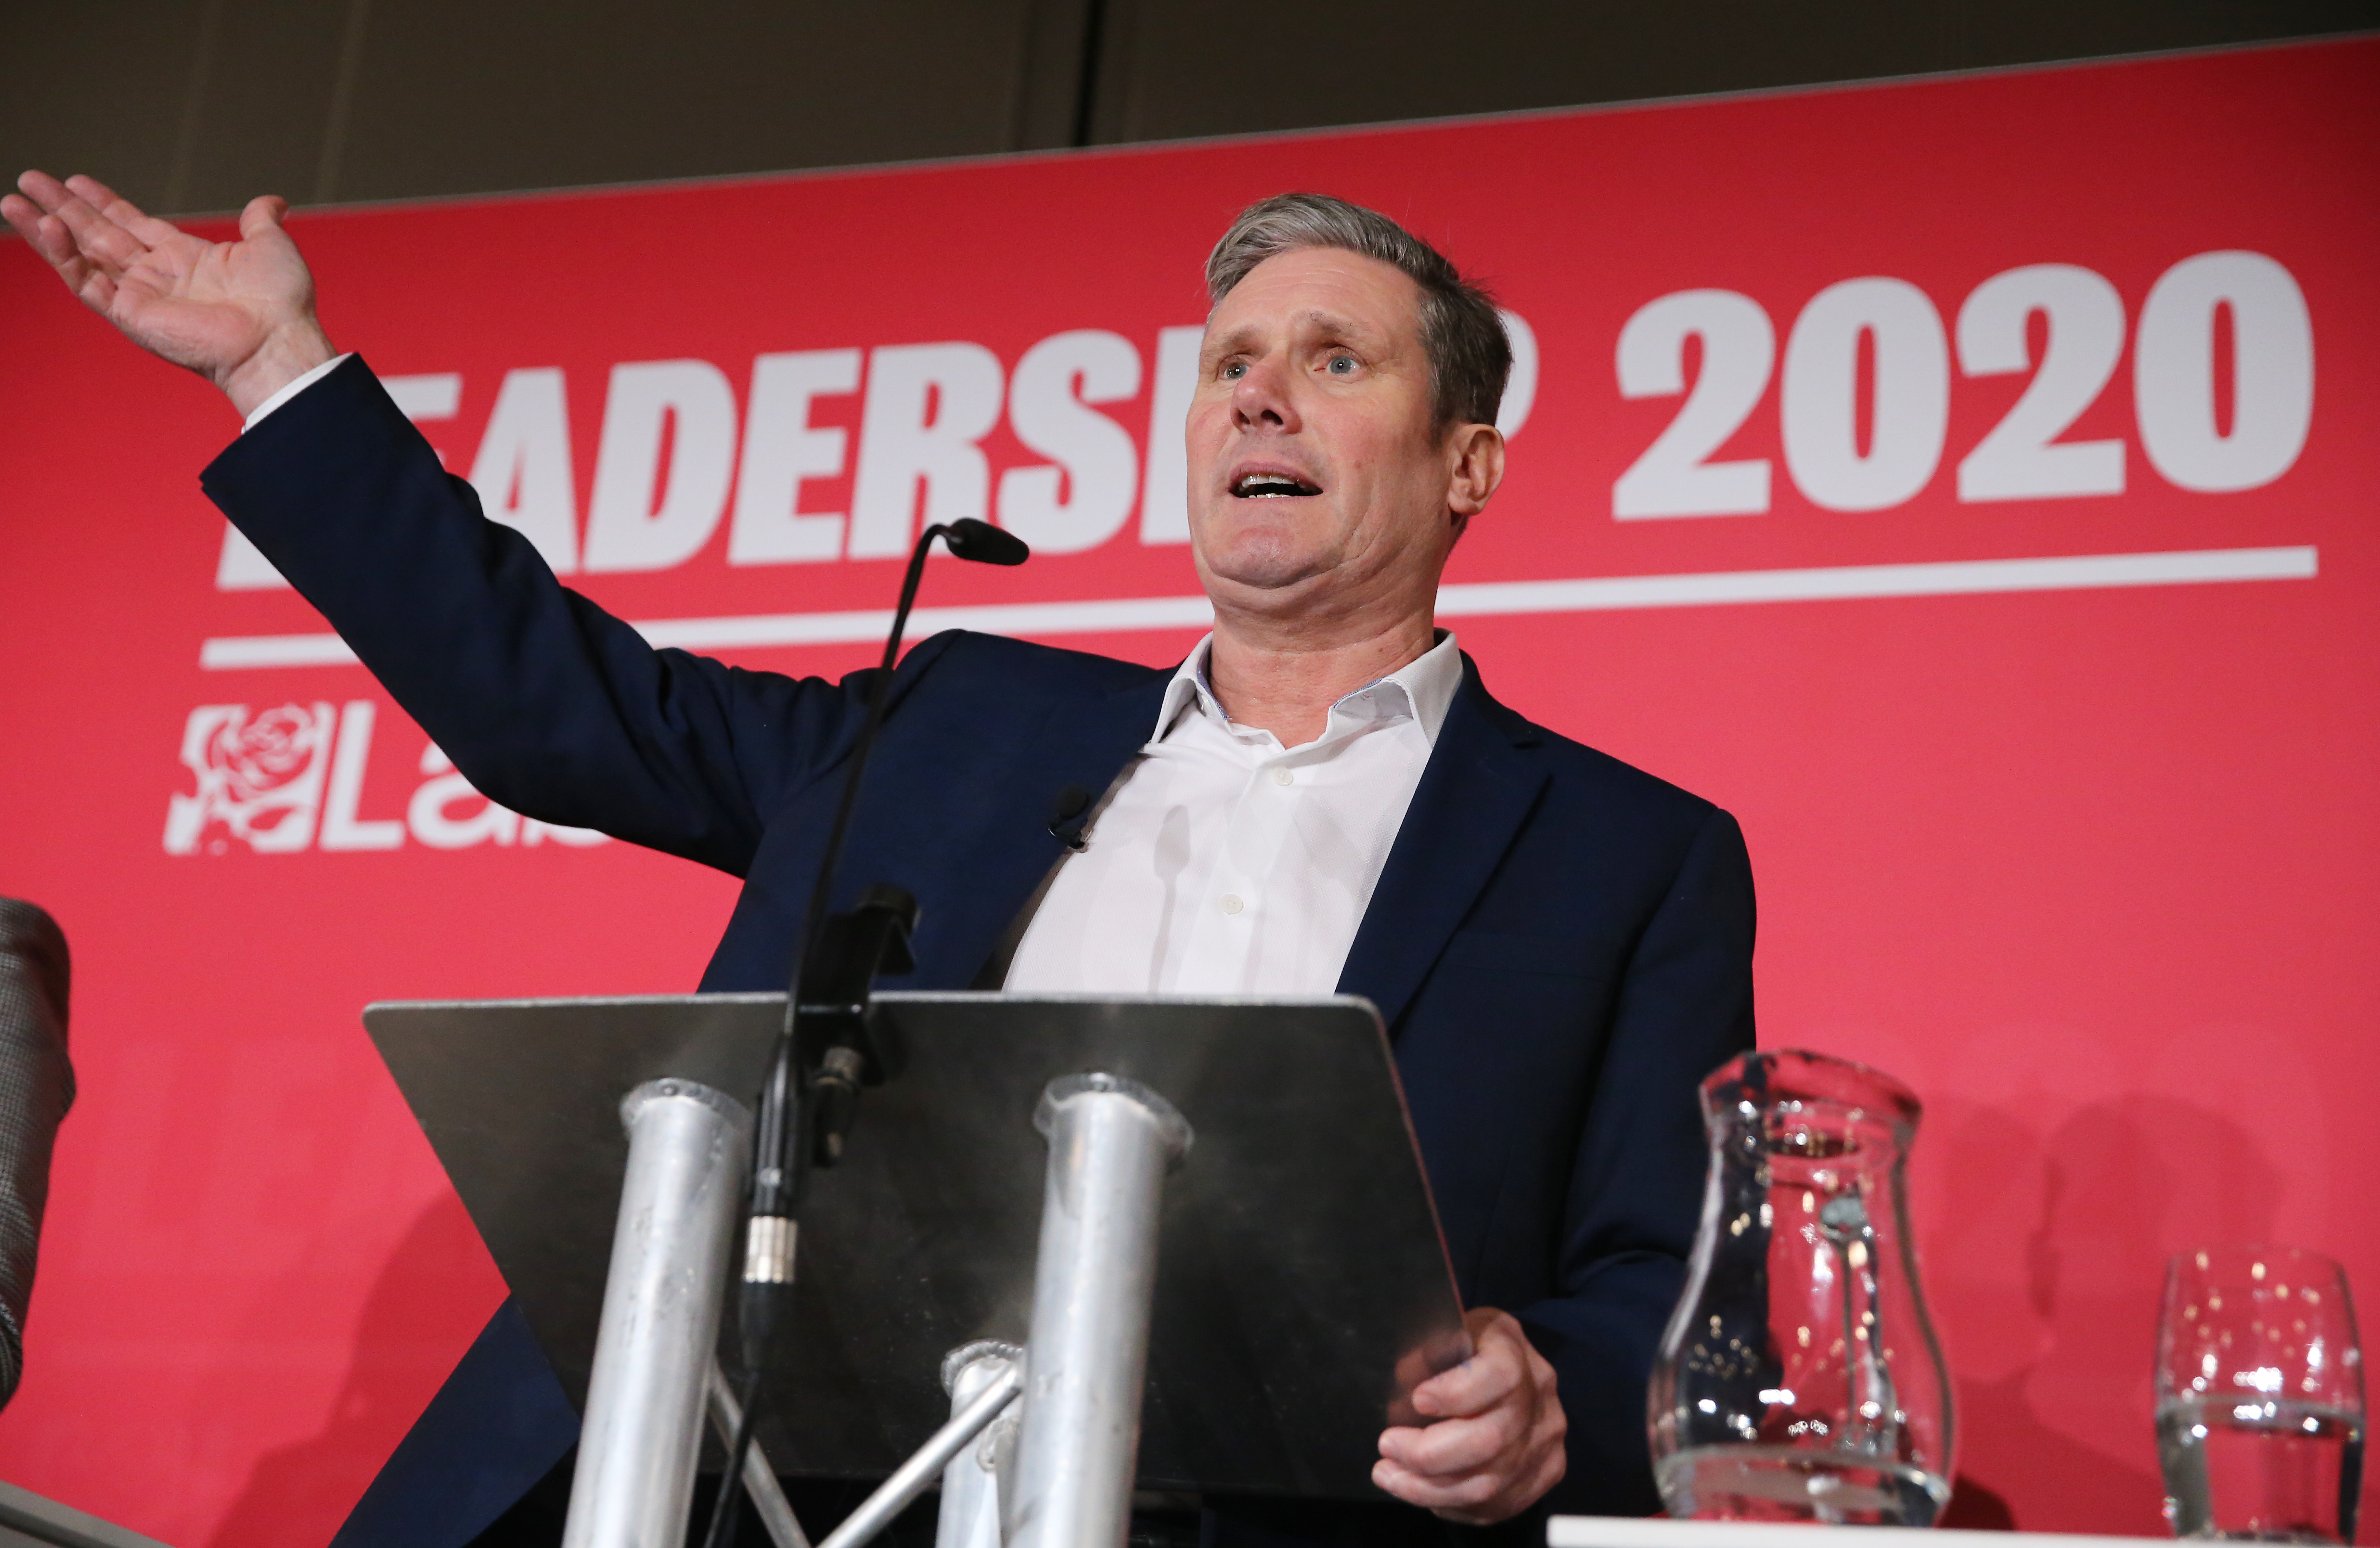 Keir Starmer during the Labour leadership hustings at the ACC Liverpool. Picture date: Saturday January 18, 2020. Photo credit should read: Isabel Infantes / EMPICS Entertainment.